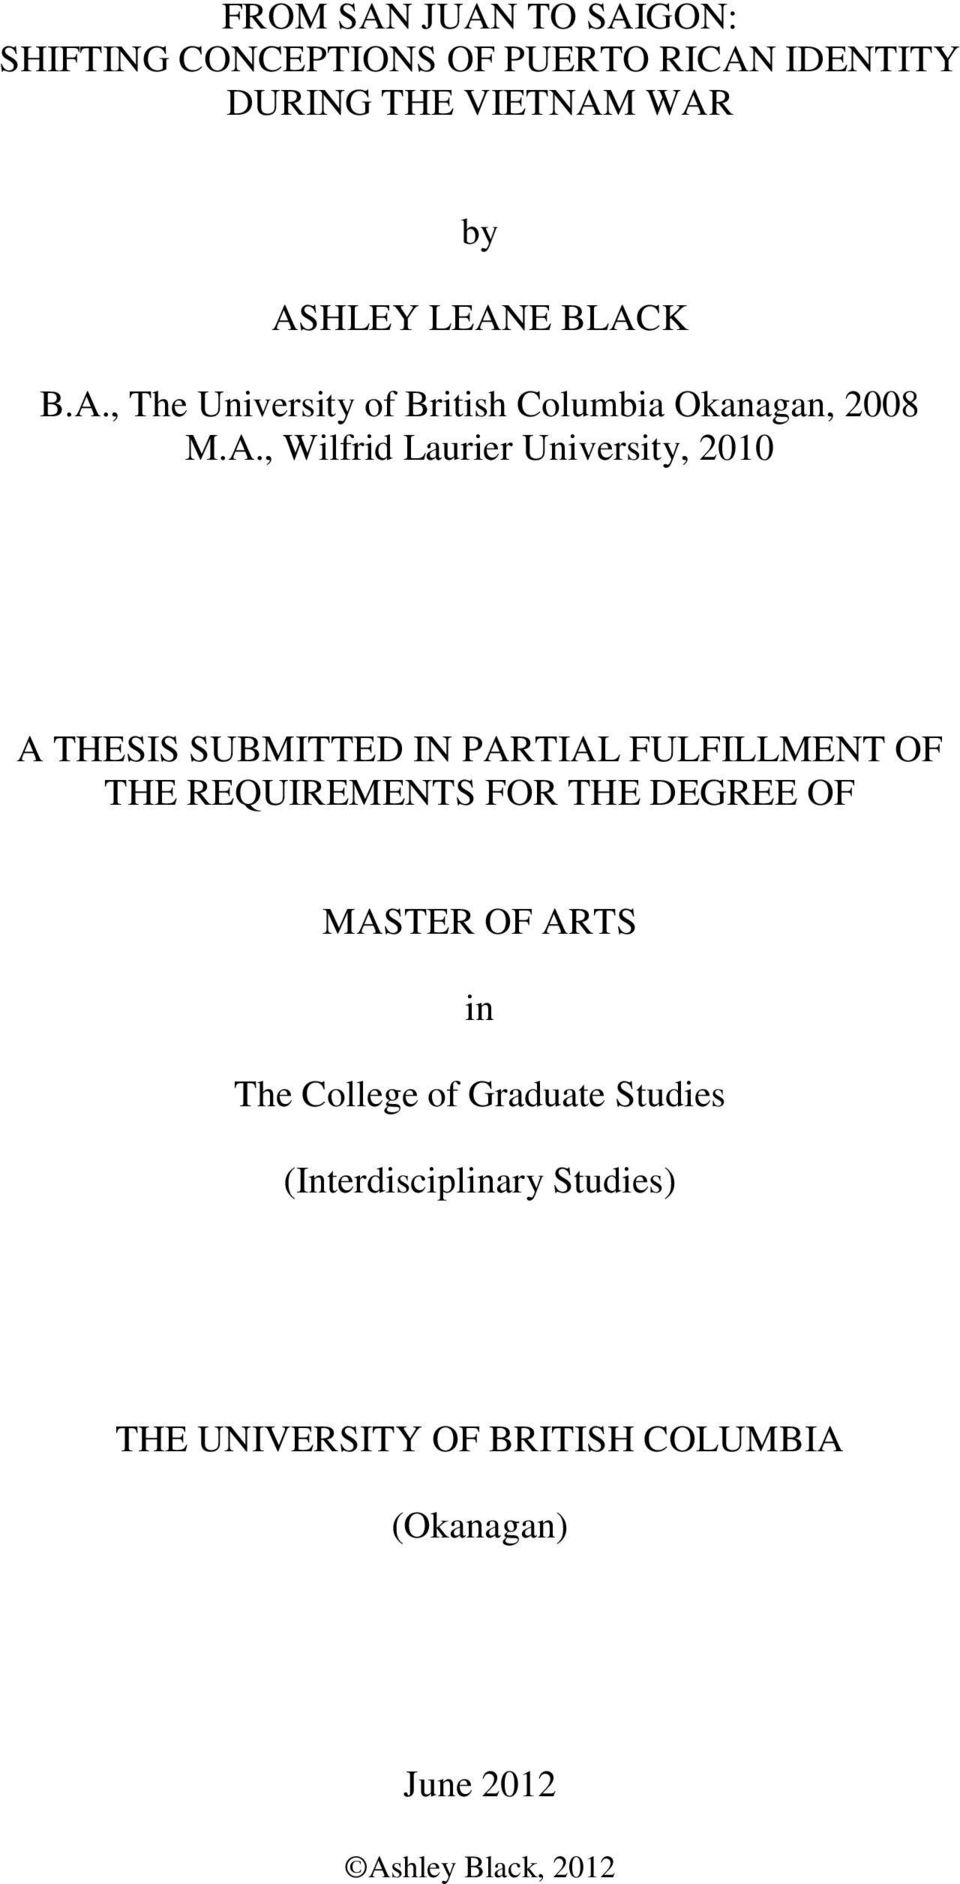 SUBMITTED IN PARTIAL FULFILLMENT OF THE REQUIREMENTS FOR THE DEGREE OF MASTER OF ARTS in The College of